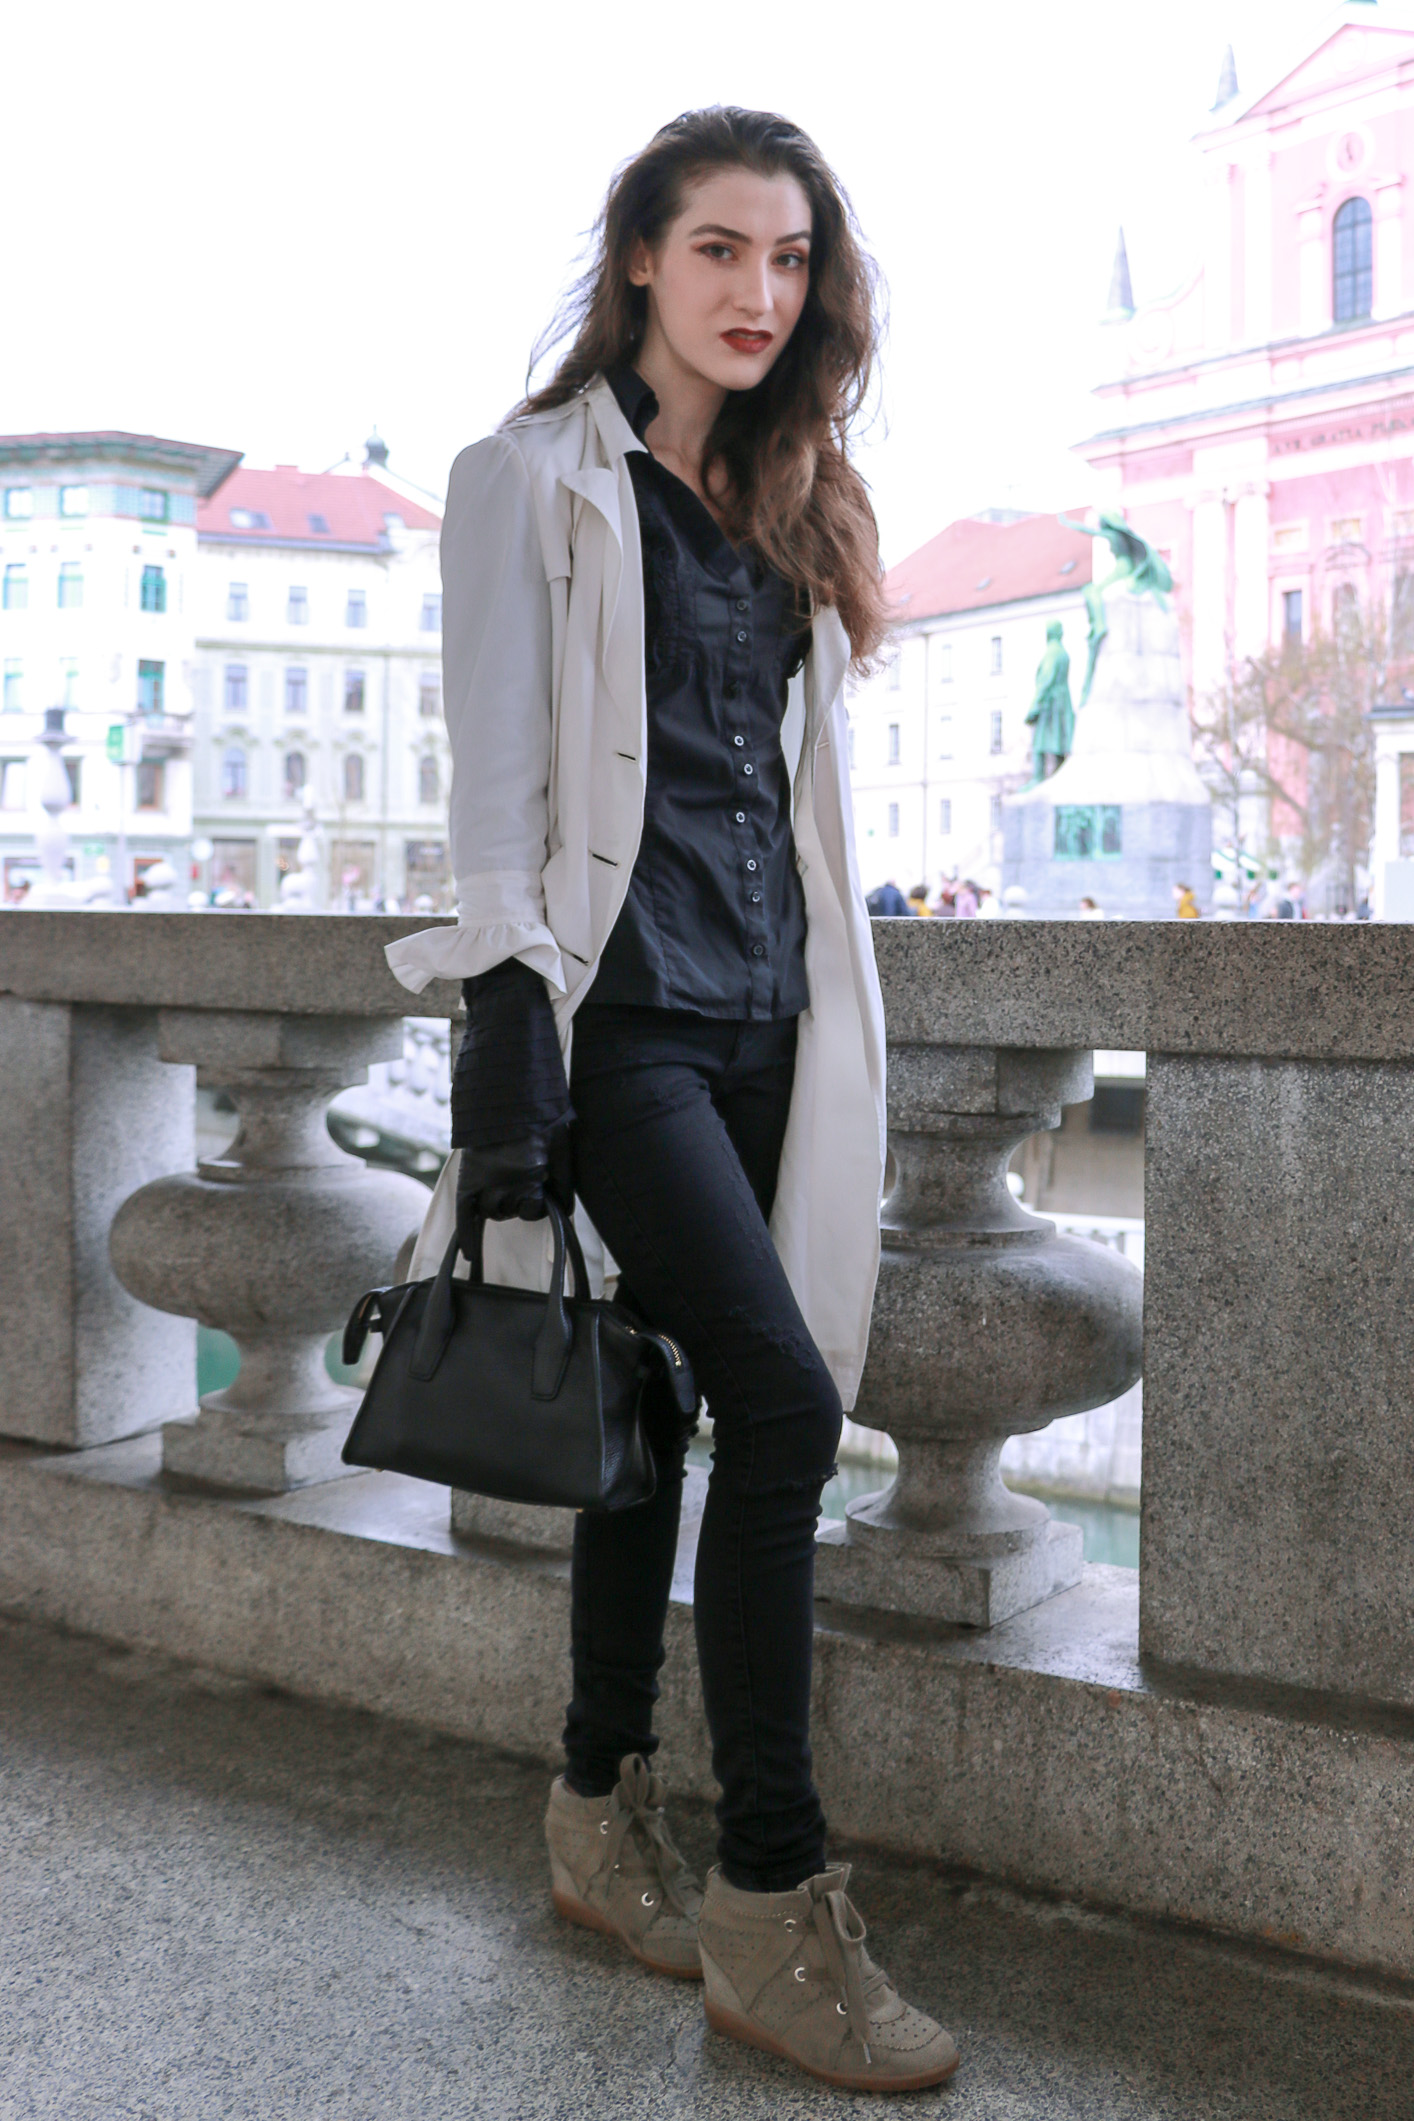 Fashion blogger Veronika Lipar of Brunette From Wall Street sharing how to style ruffled sleeves to look chic not girly